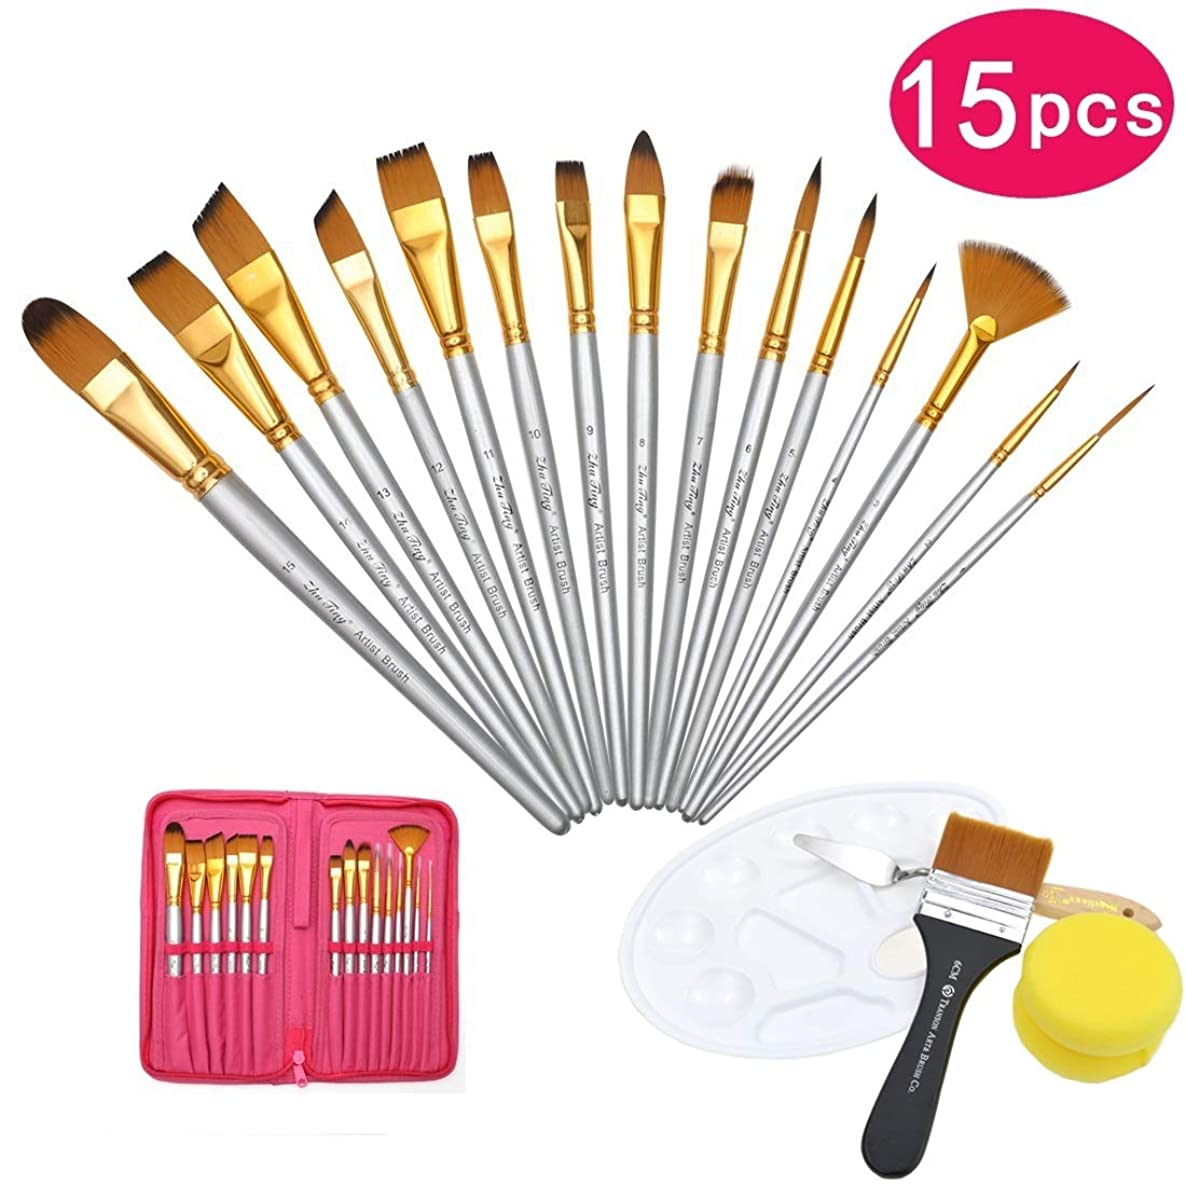 DerBlue 15 Pcs Paint Brush Set with Free Large Flat Brush,Palette Knife,Paint Palette and 2pcs Sponge for Acrylic, Oil, Watercolor and Gouache(Red)